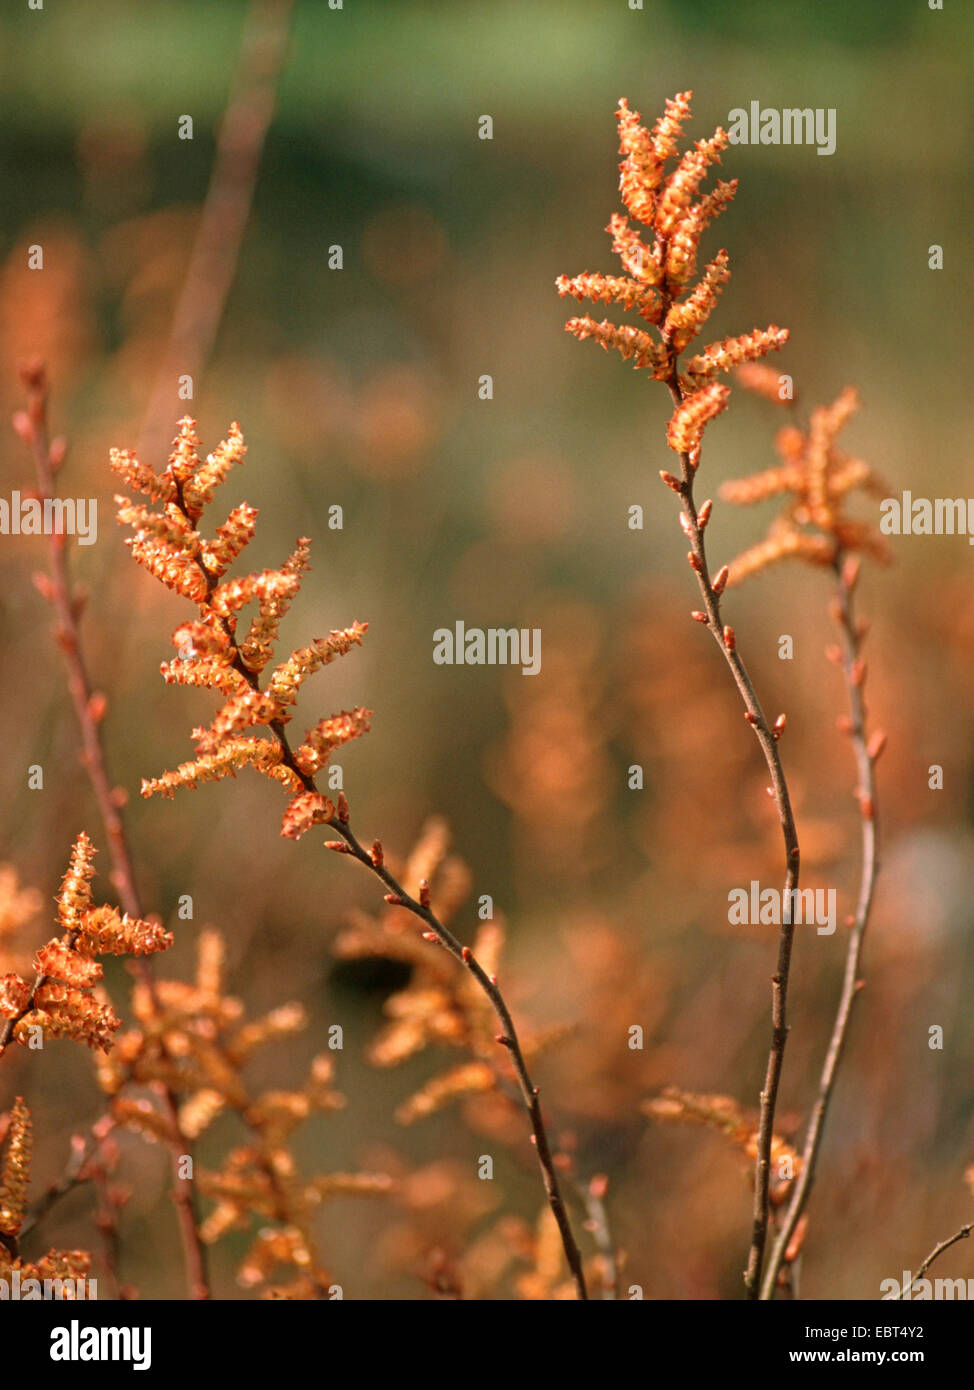 bog myrtle, sweet gale, sweet bayberry (Myrica gale), blooming branches, male catkins, Germany - Stock Image